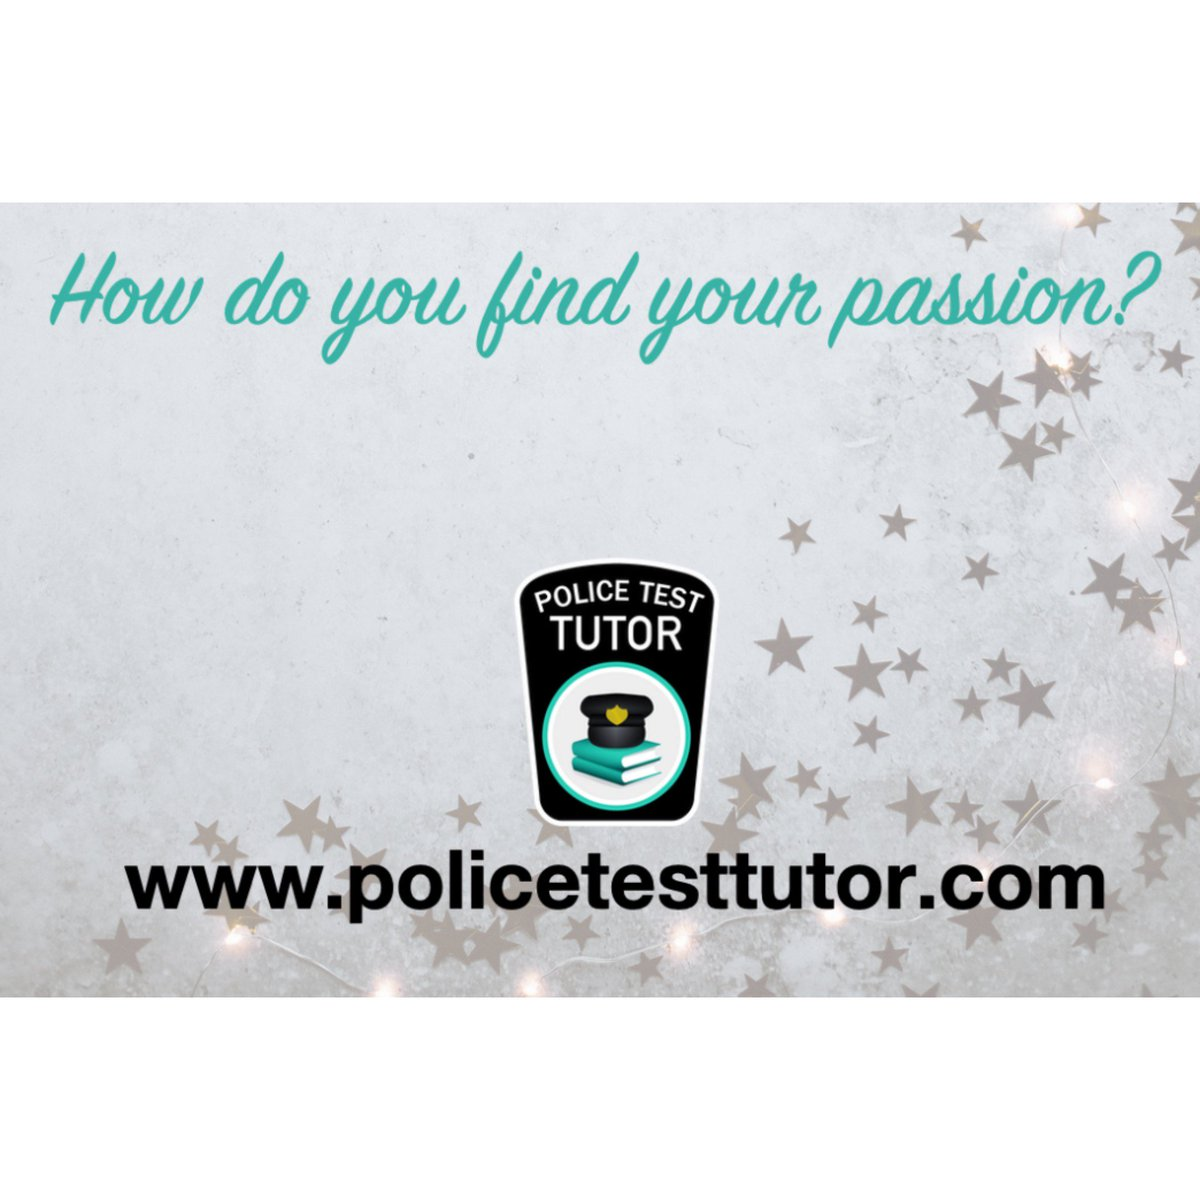 Police Test Tutor's photo on Barrie